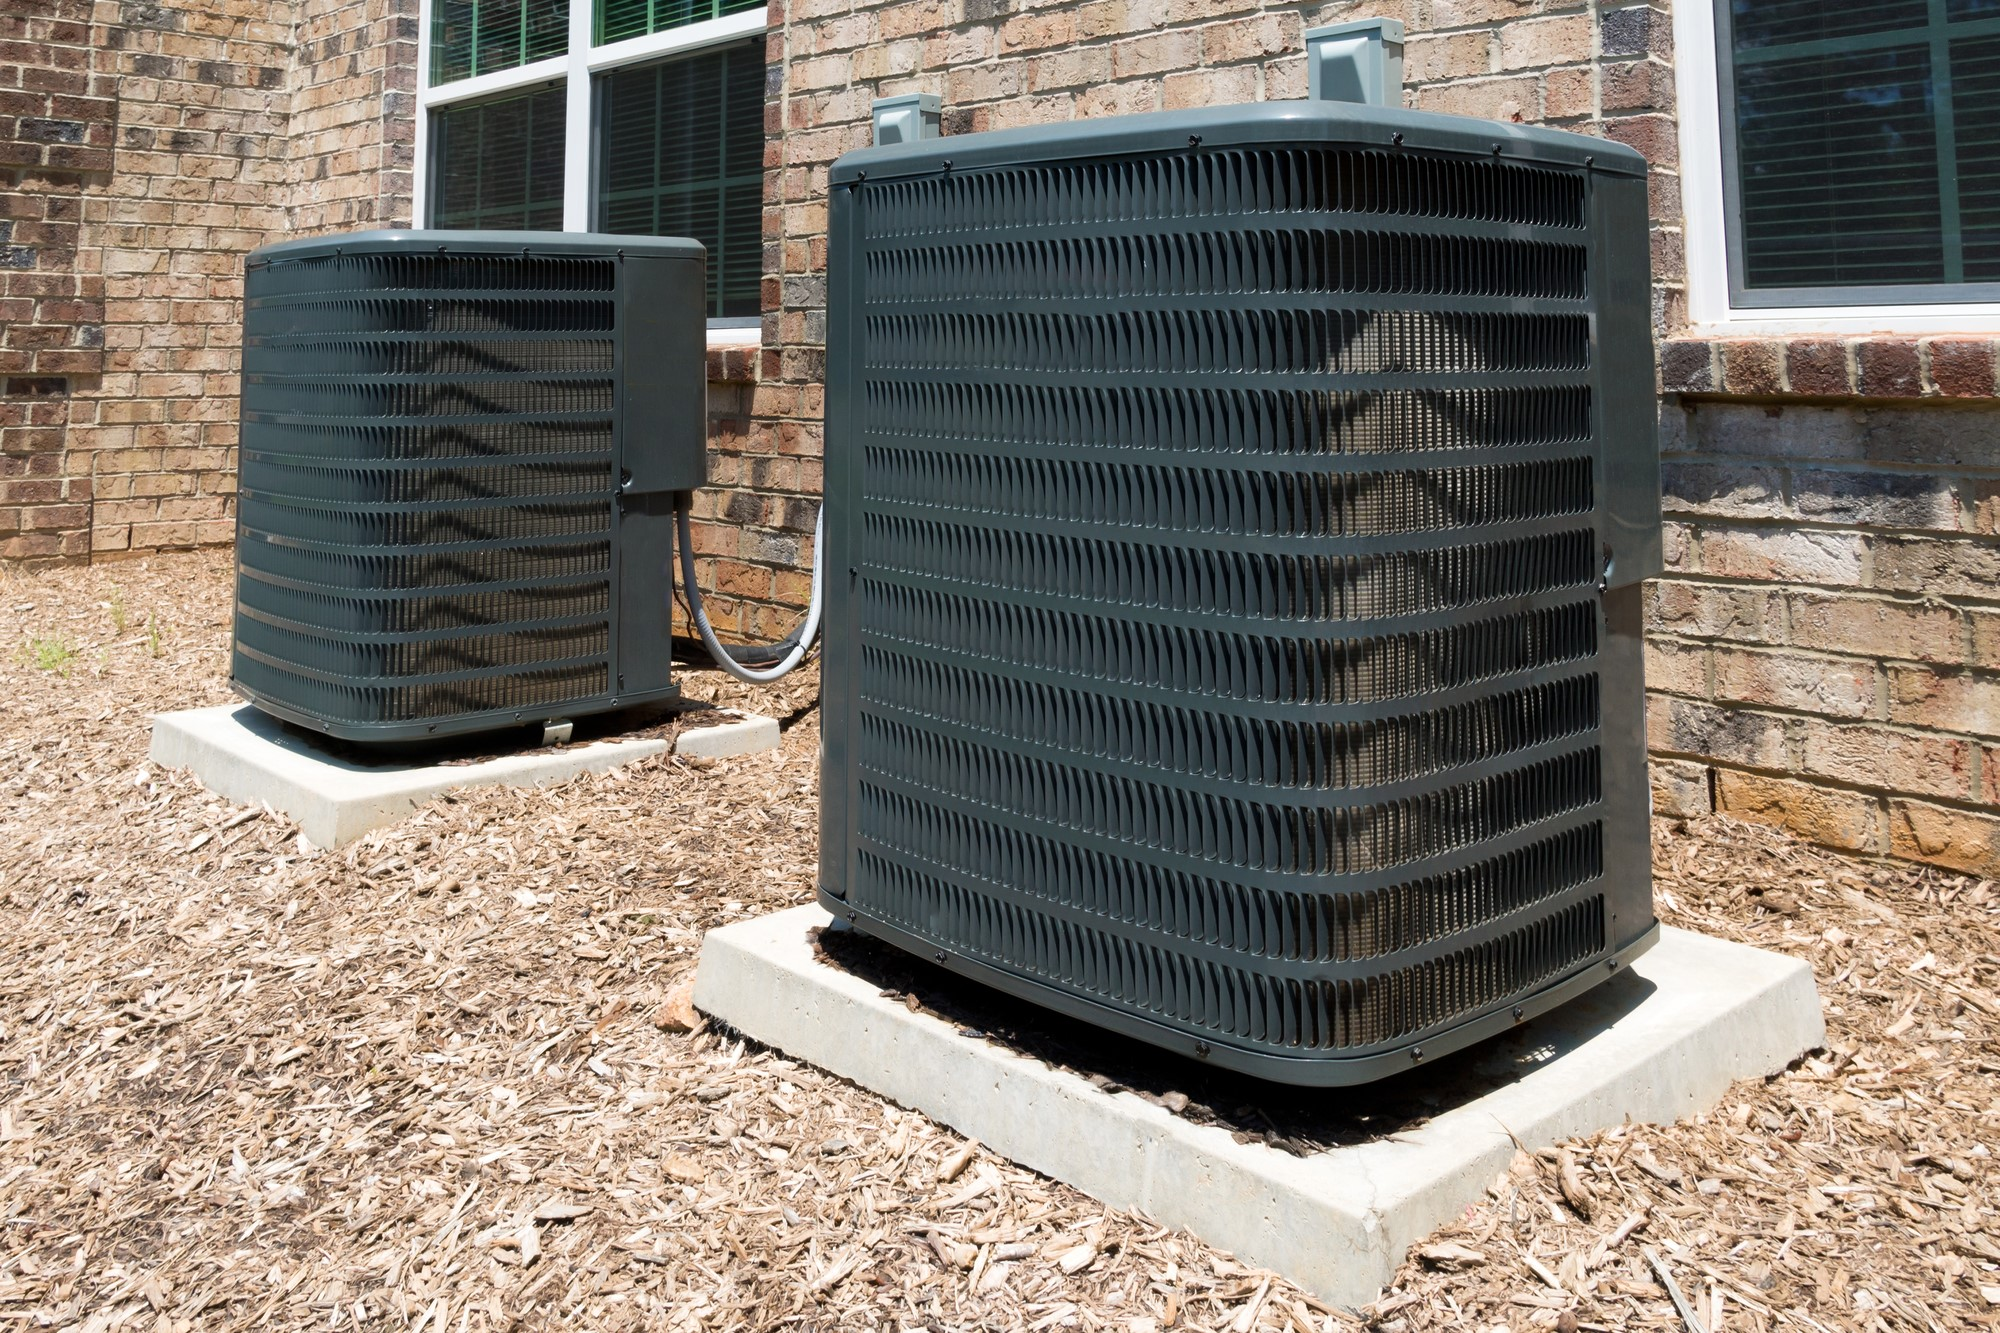 4 Common Air Conditioning Complaints